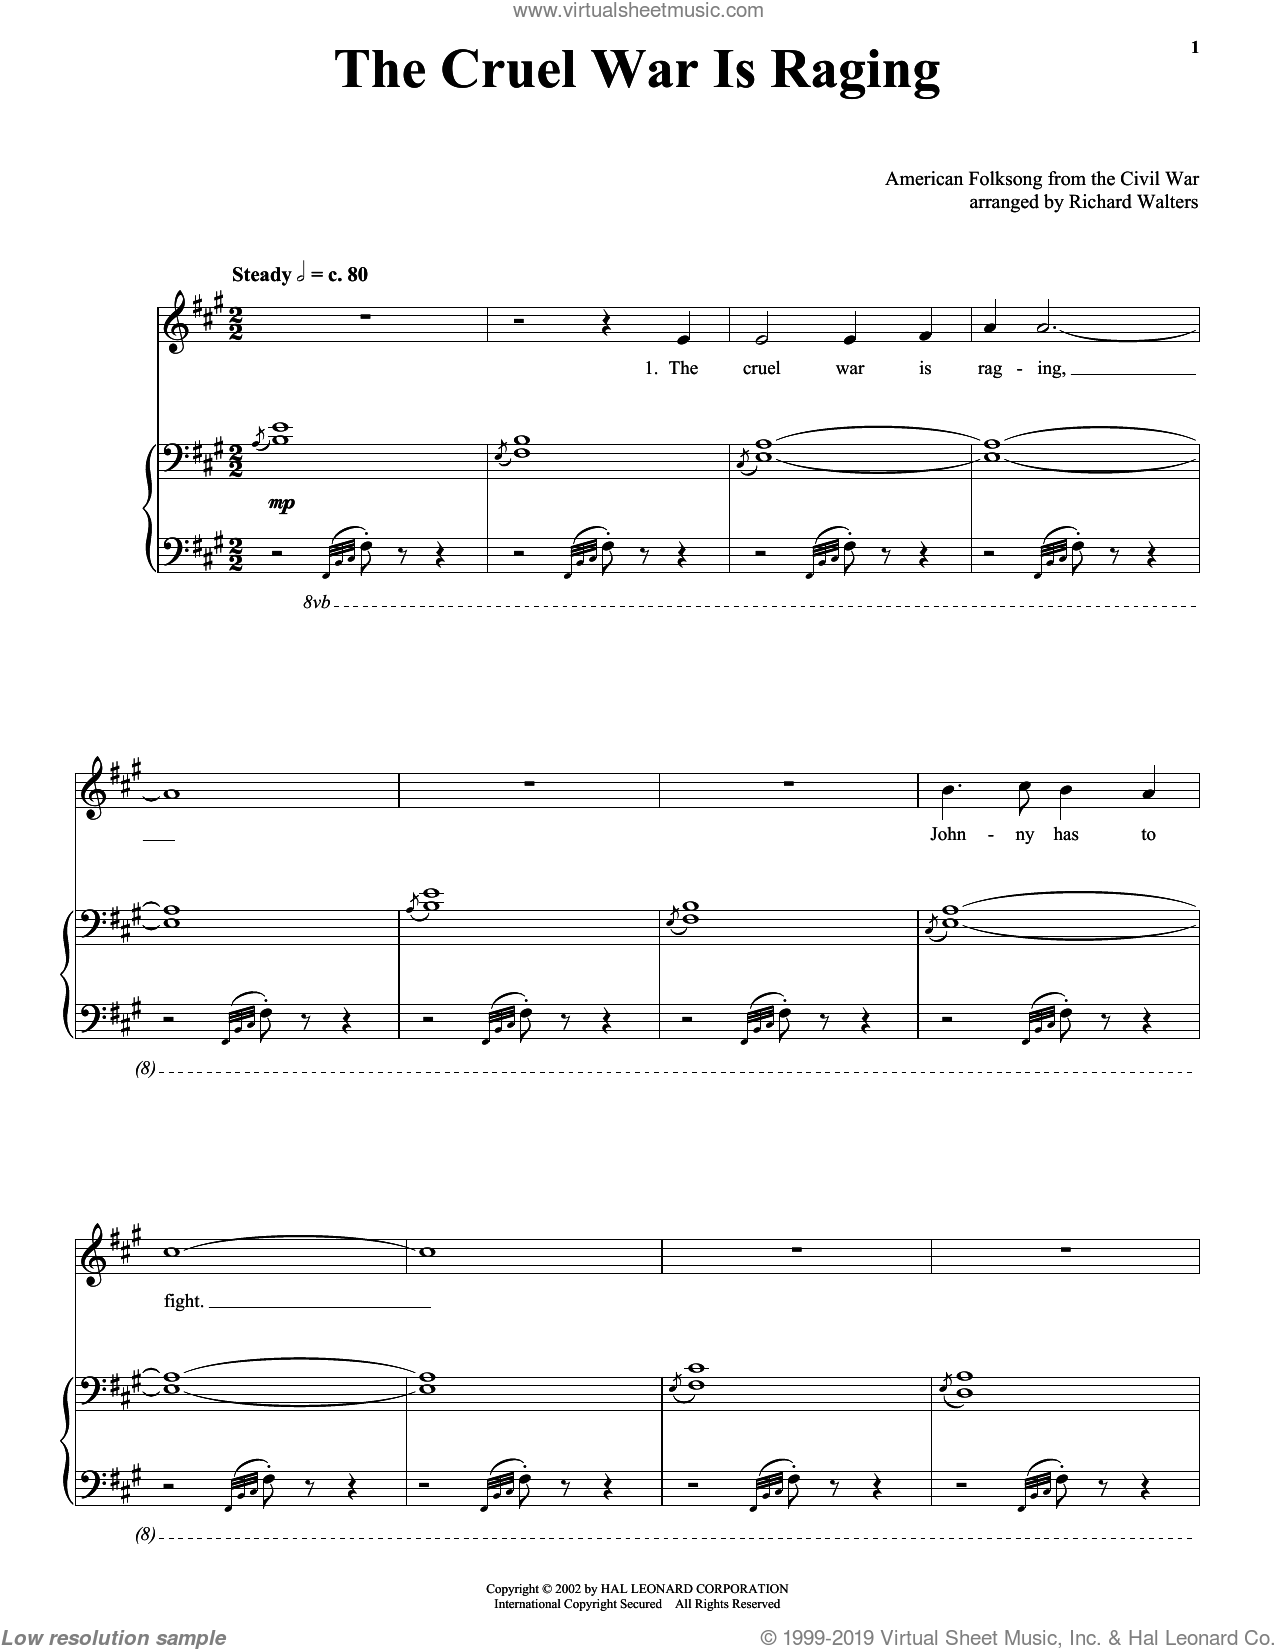 The Cruel War Is Raging sheet music for voice, piano or guitar, intermediate skill level